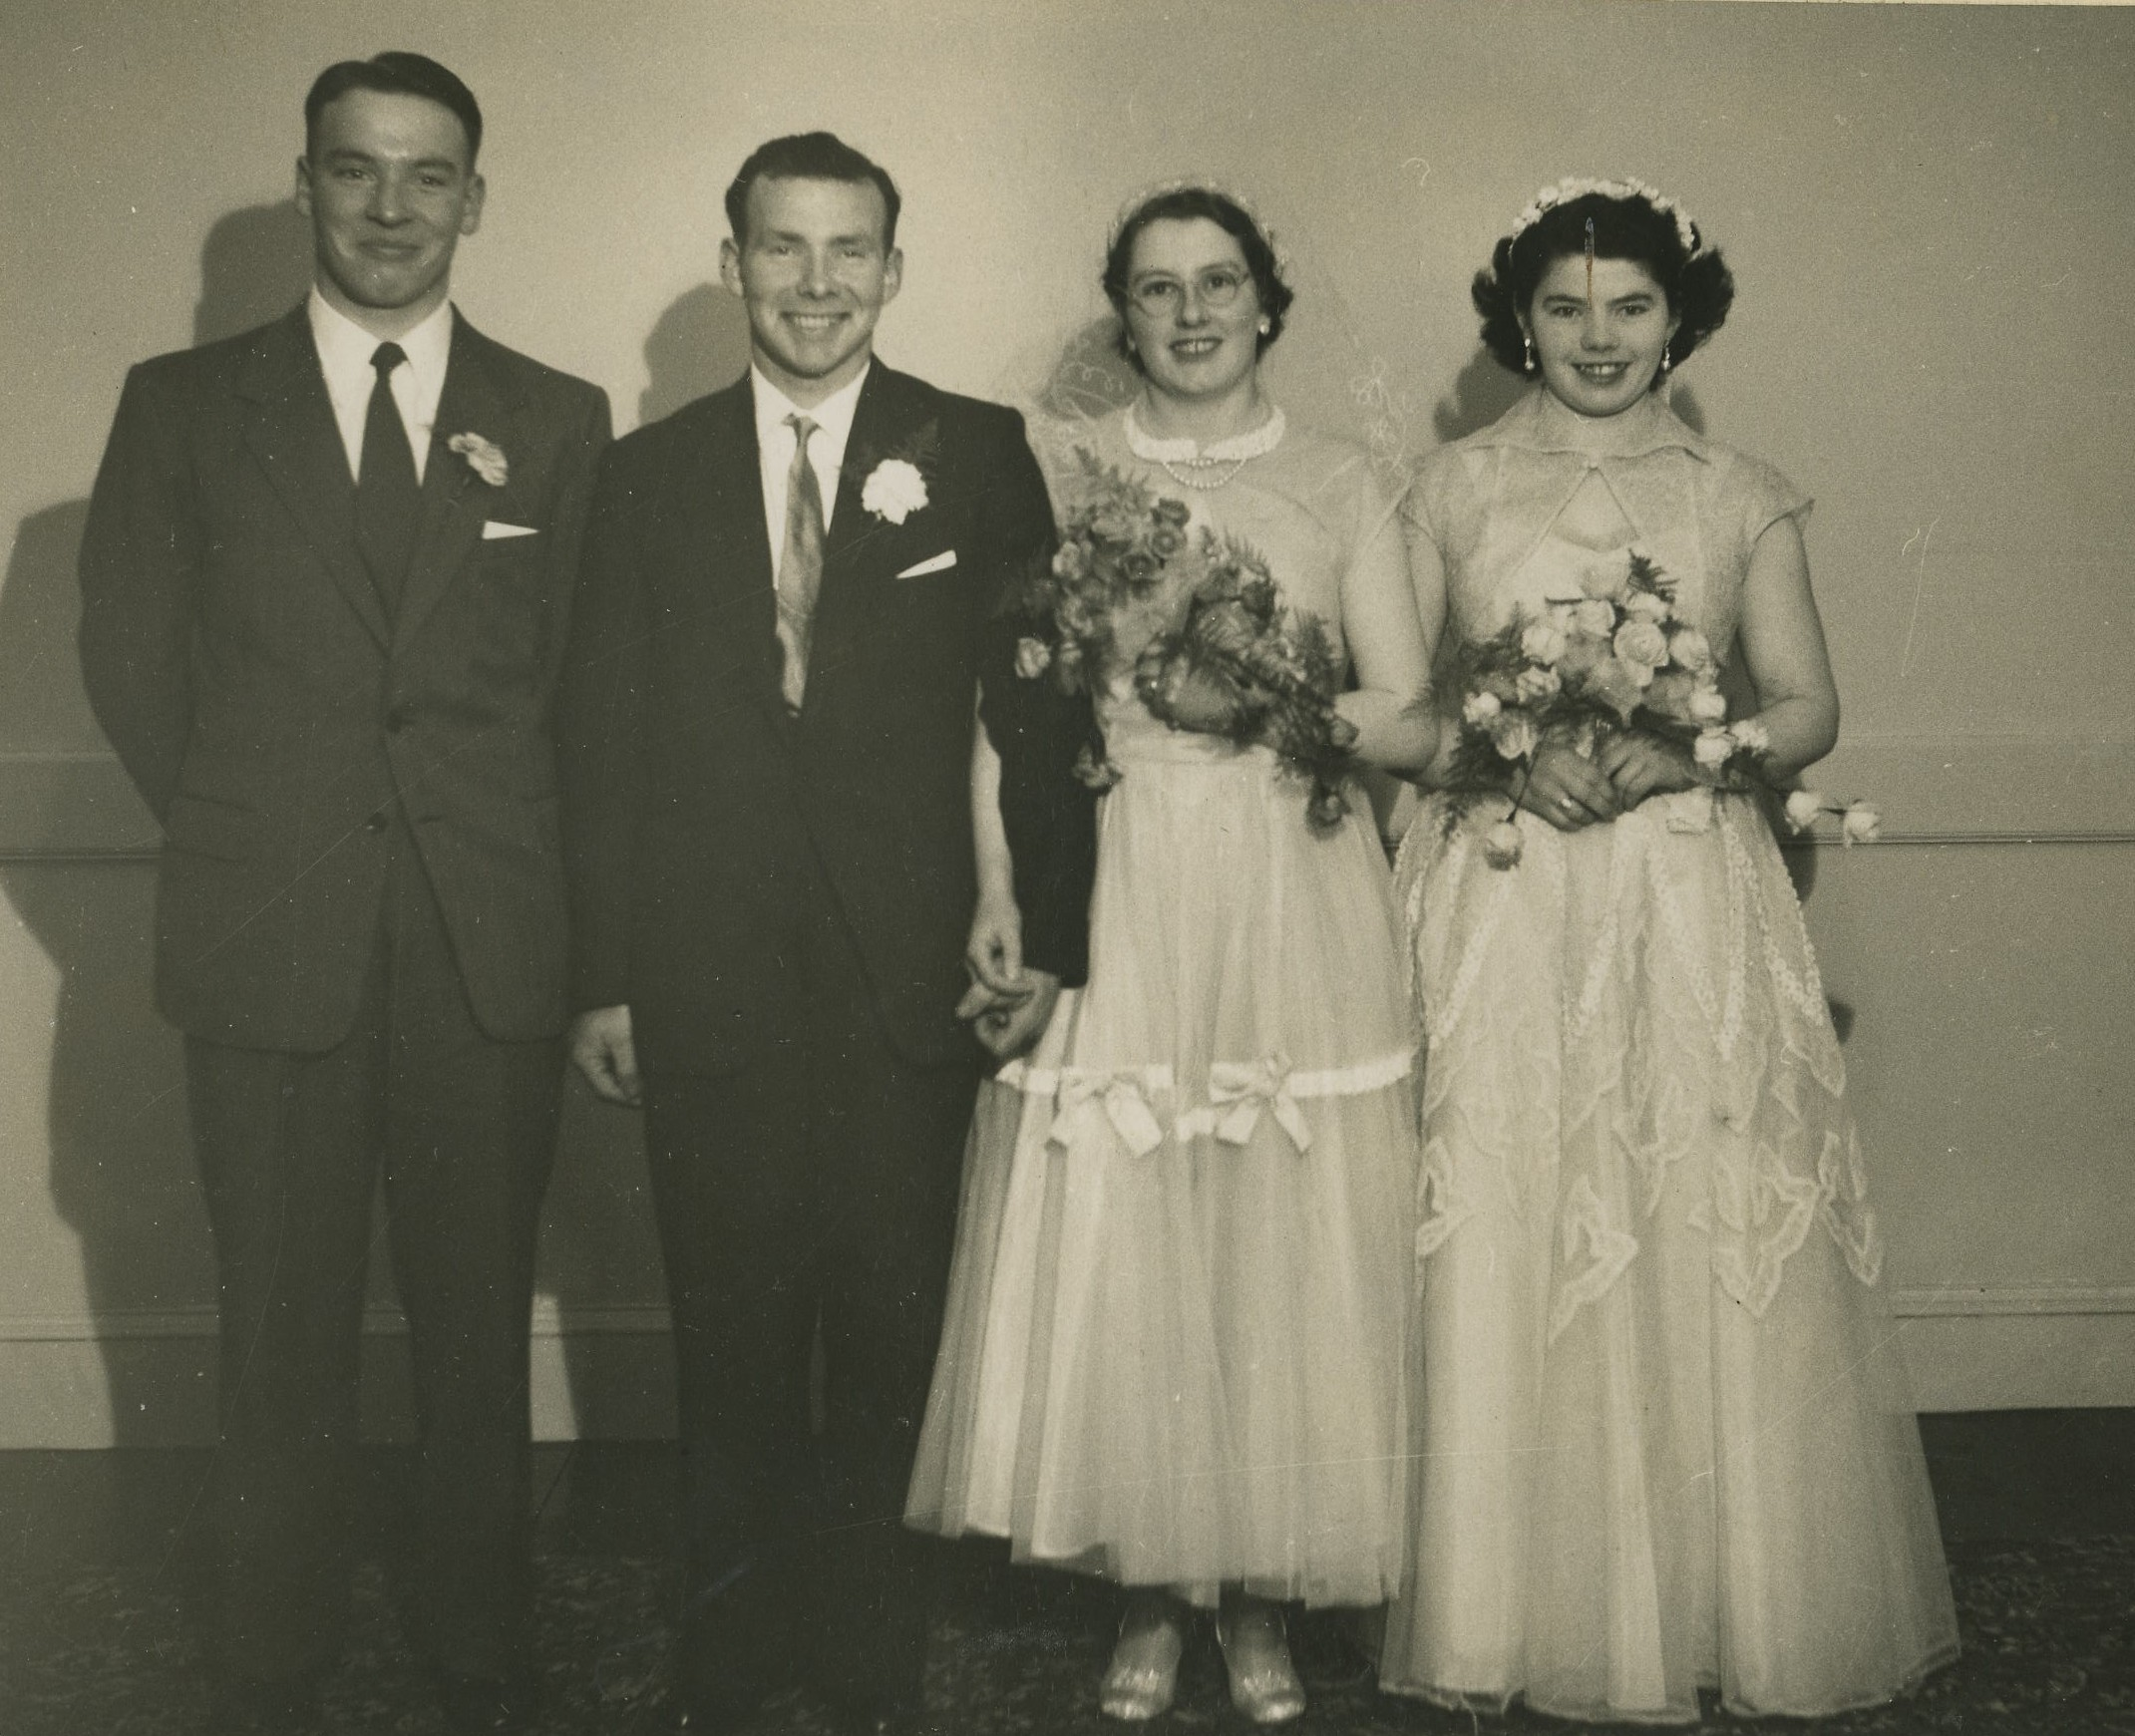 Archie MacCallum & Ethel Wood Wedding